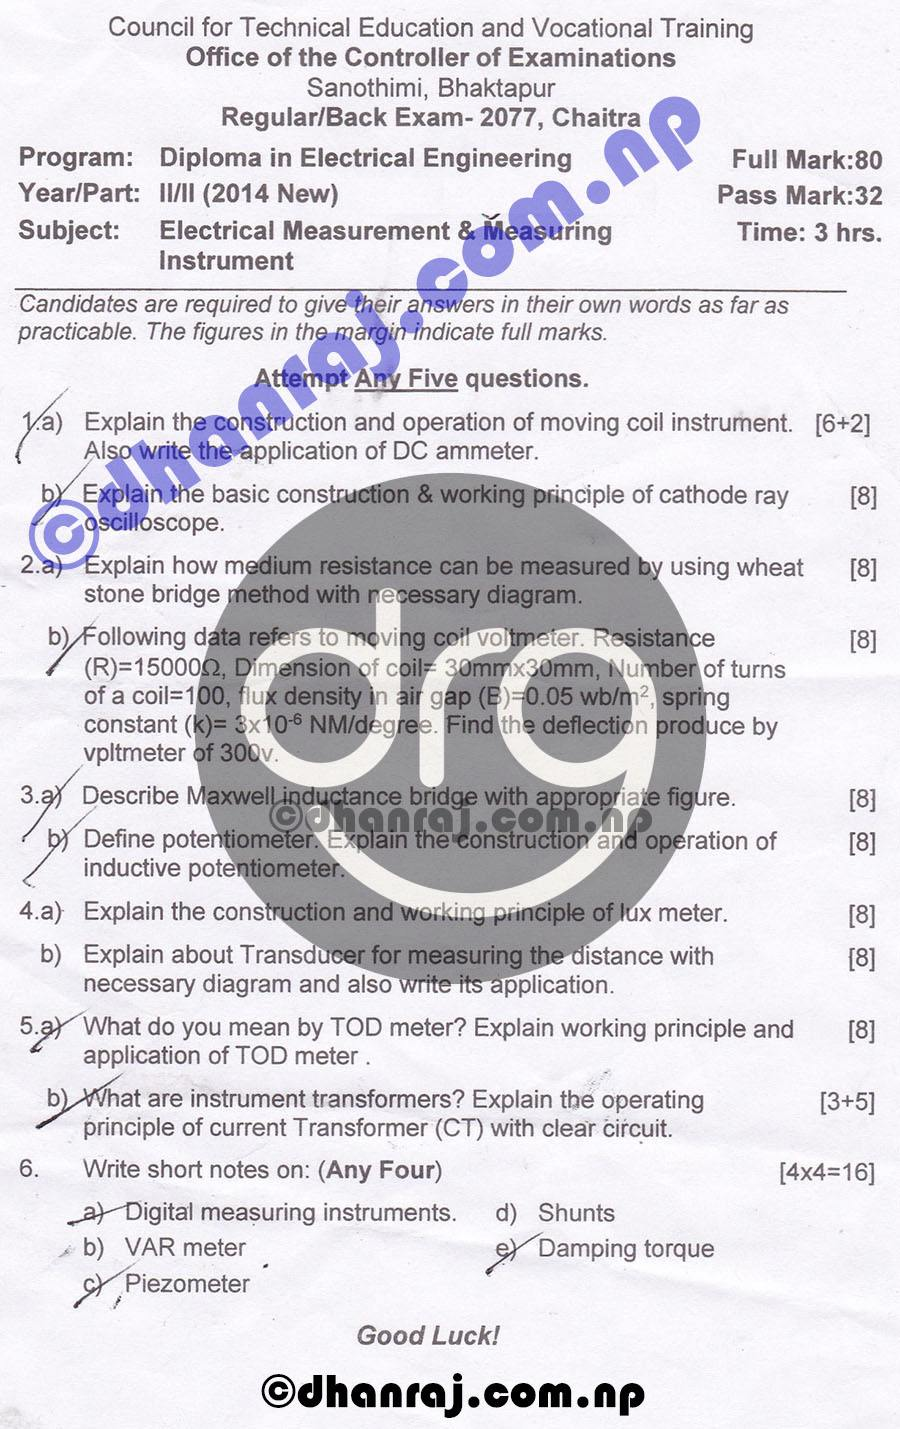 Electrical-Measurement-and-Measuring-Instrument-Question-Paper-2077-CTEVT-Diploma-2nd-Year-2nd-Part